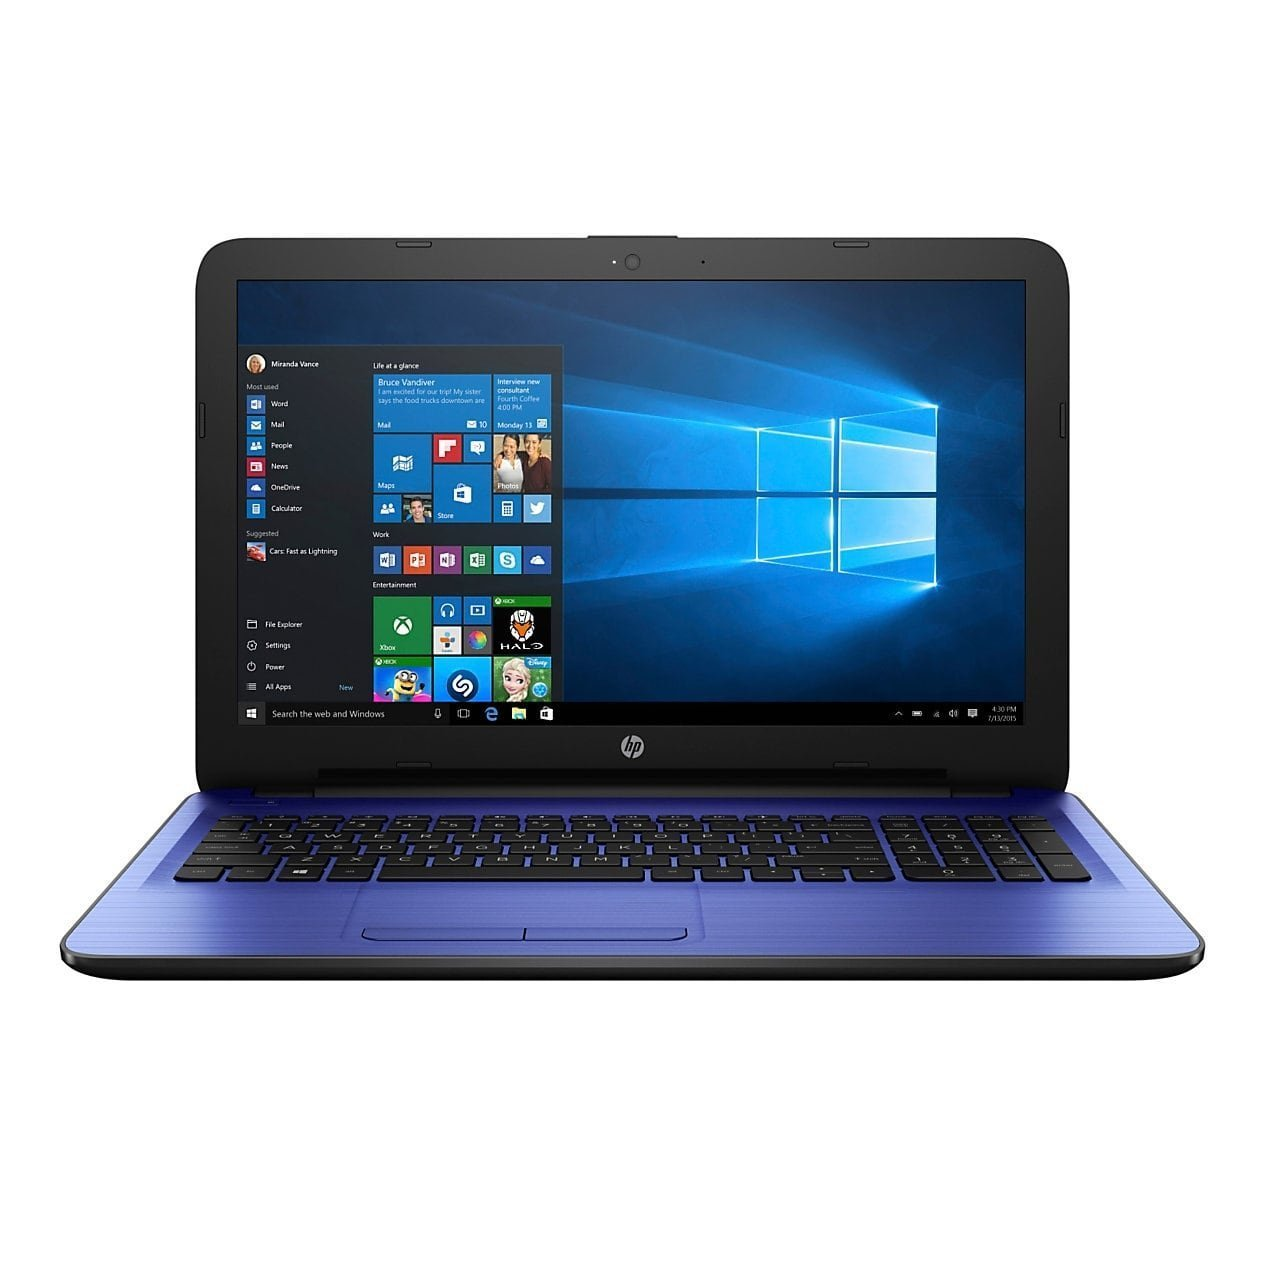 HP 14'' Laptop PC Intel N3060 Dual Core 1.6 Ghz turbo up to 2.48GHz, 4GB RAM, 32GB eMMC, free 1-yr Office 365, DTS Studio, 802.11bgn WiFI, HDMI/VGA, HD Webcam, USB 3.0, 10/100 Ethernet, Windows 10